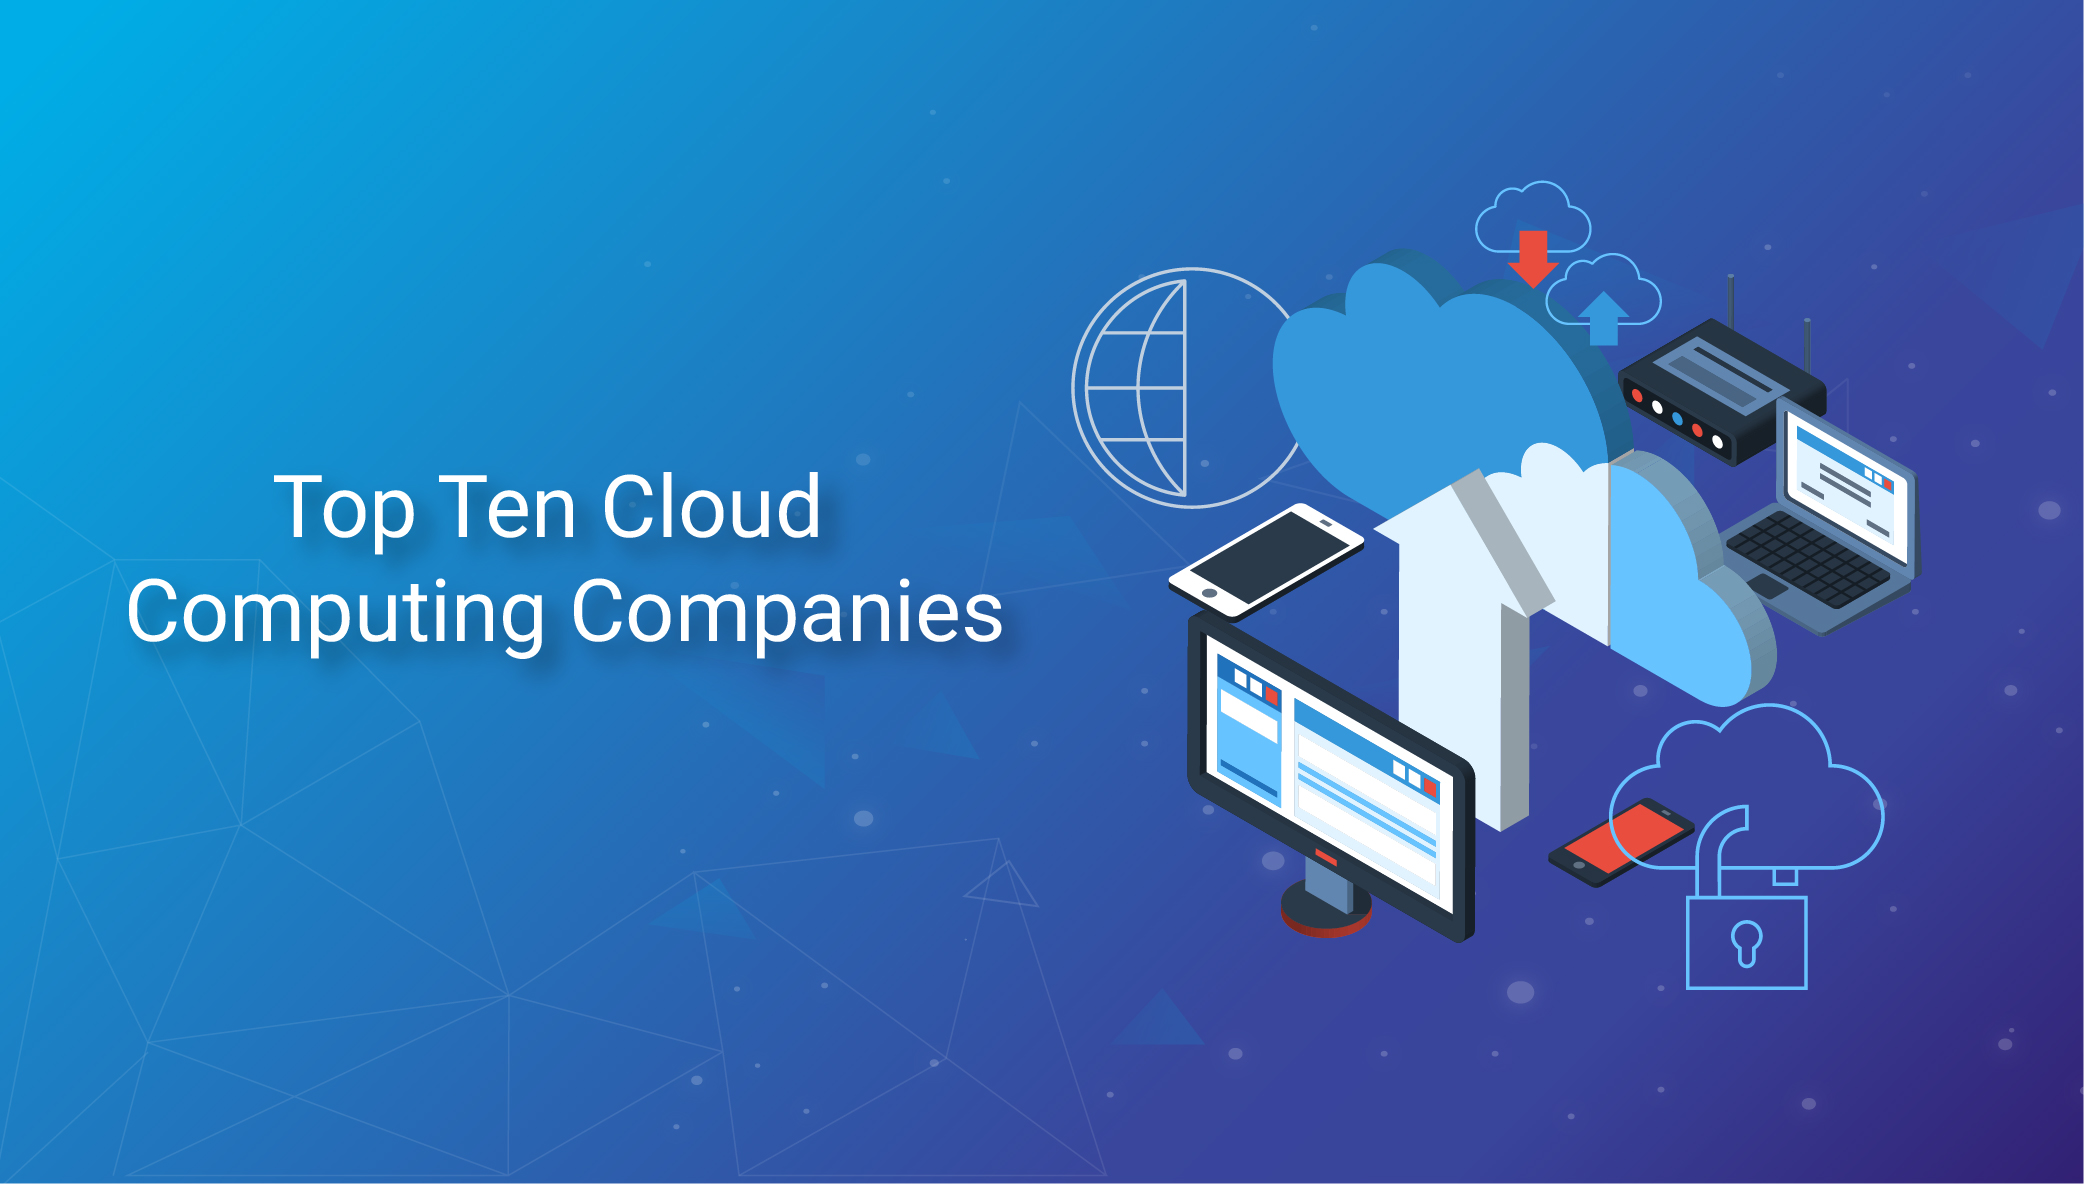 Top 10 Cloud Computing Companies in World, USA